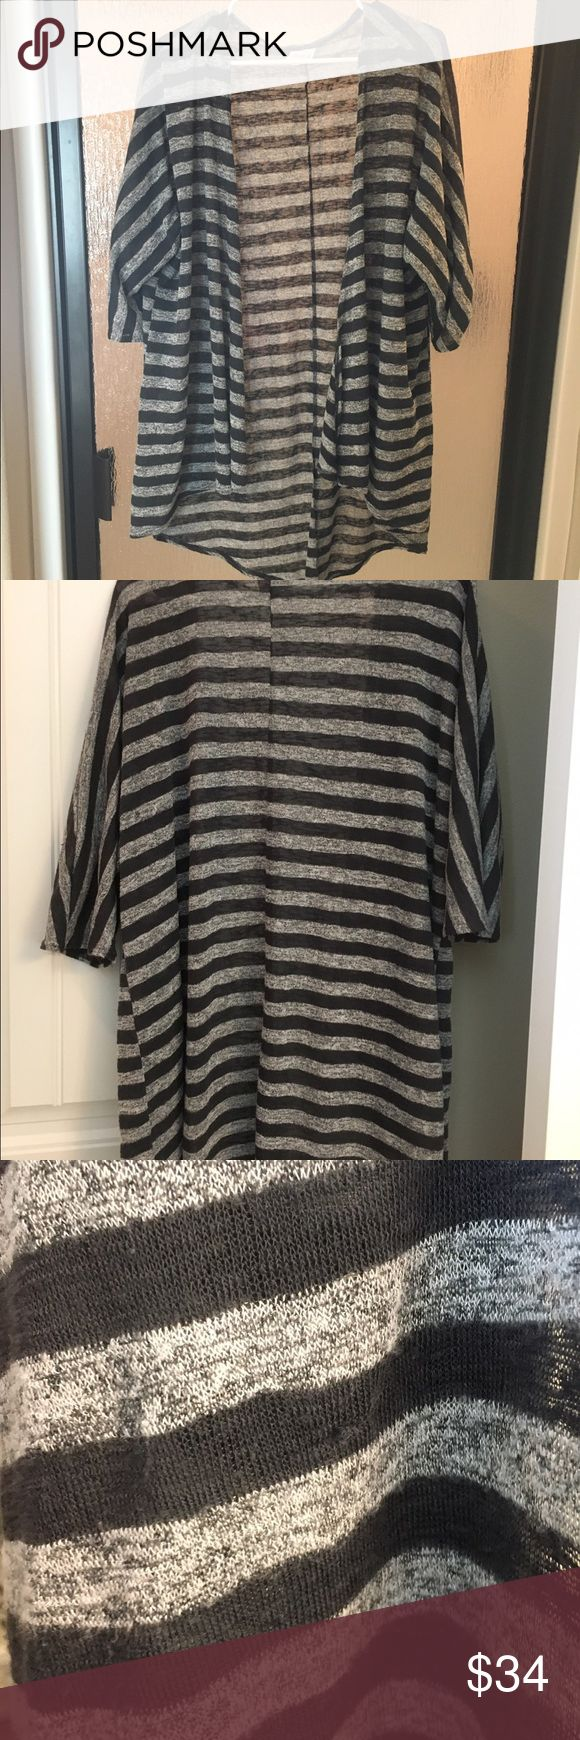 Lularoe Lindsay Lularoe Lindsay. Soft, flowy, COMFY! A couple areas where the threading is loose (shown), but you really can't tell! Bundle! Taking offers! LuLaRoe Sweaters Cardigans